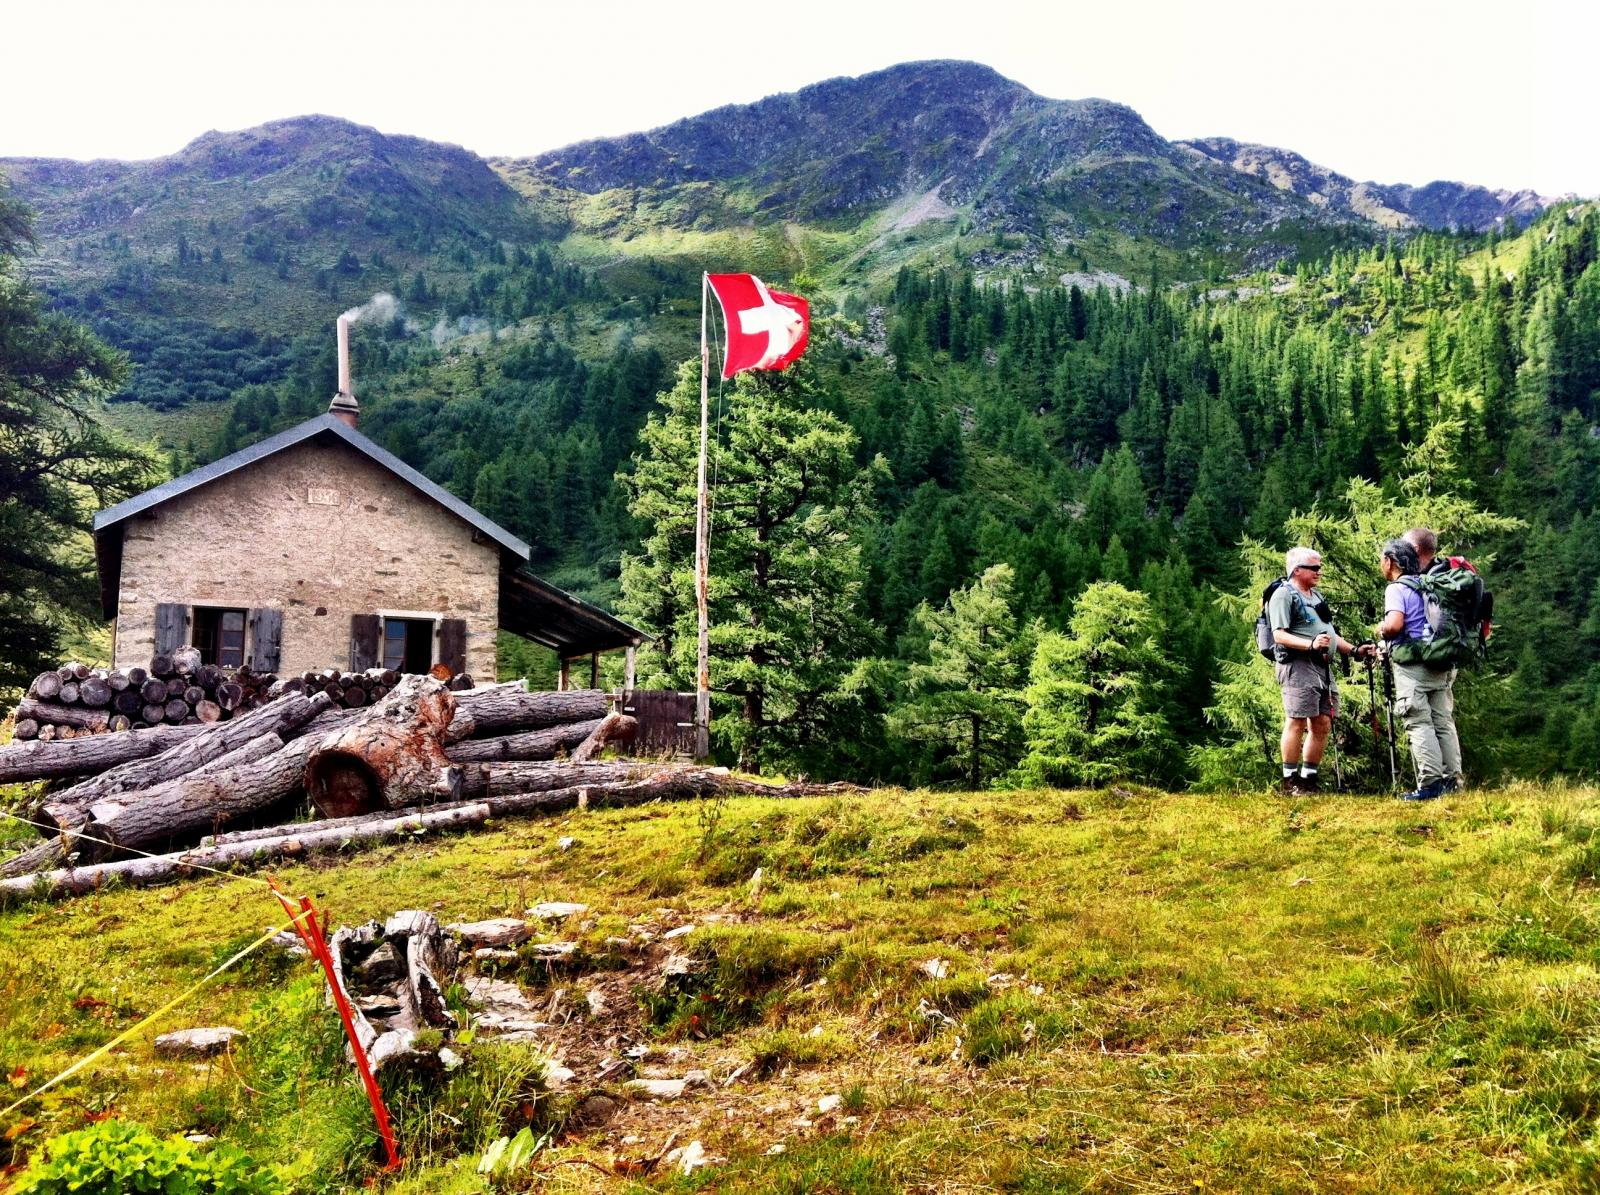 Mountain hut along the Haute Route